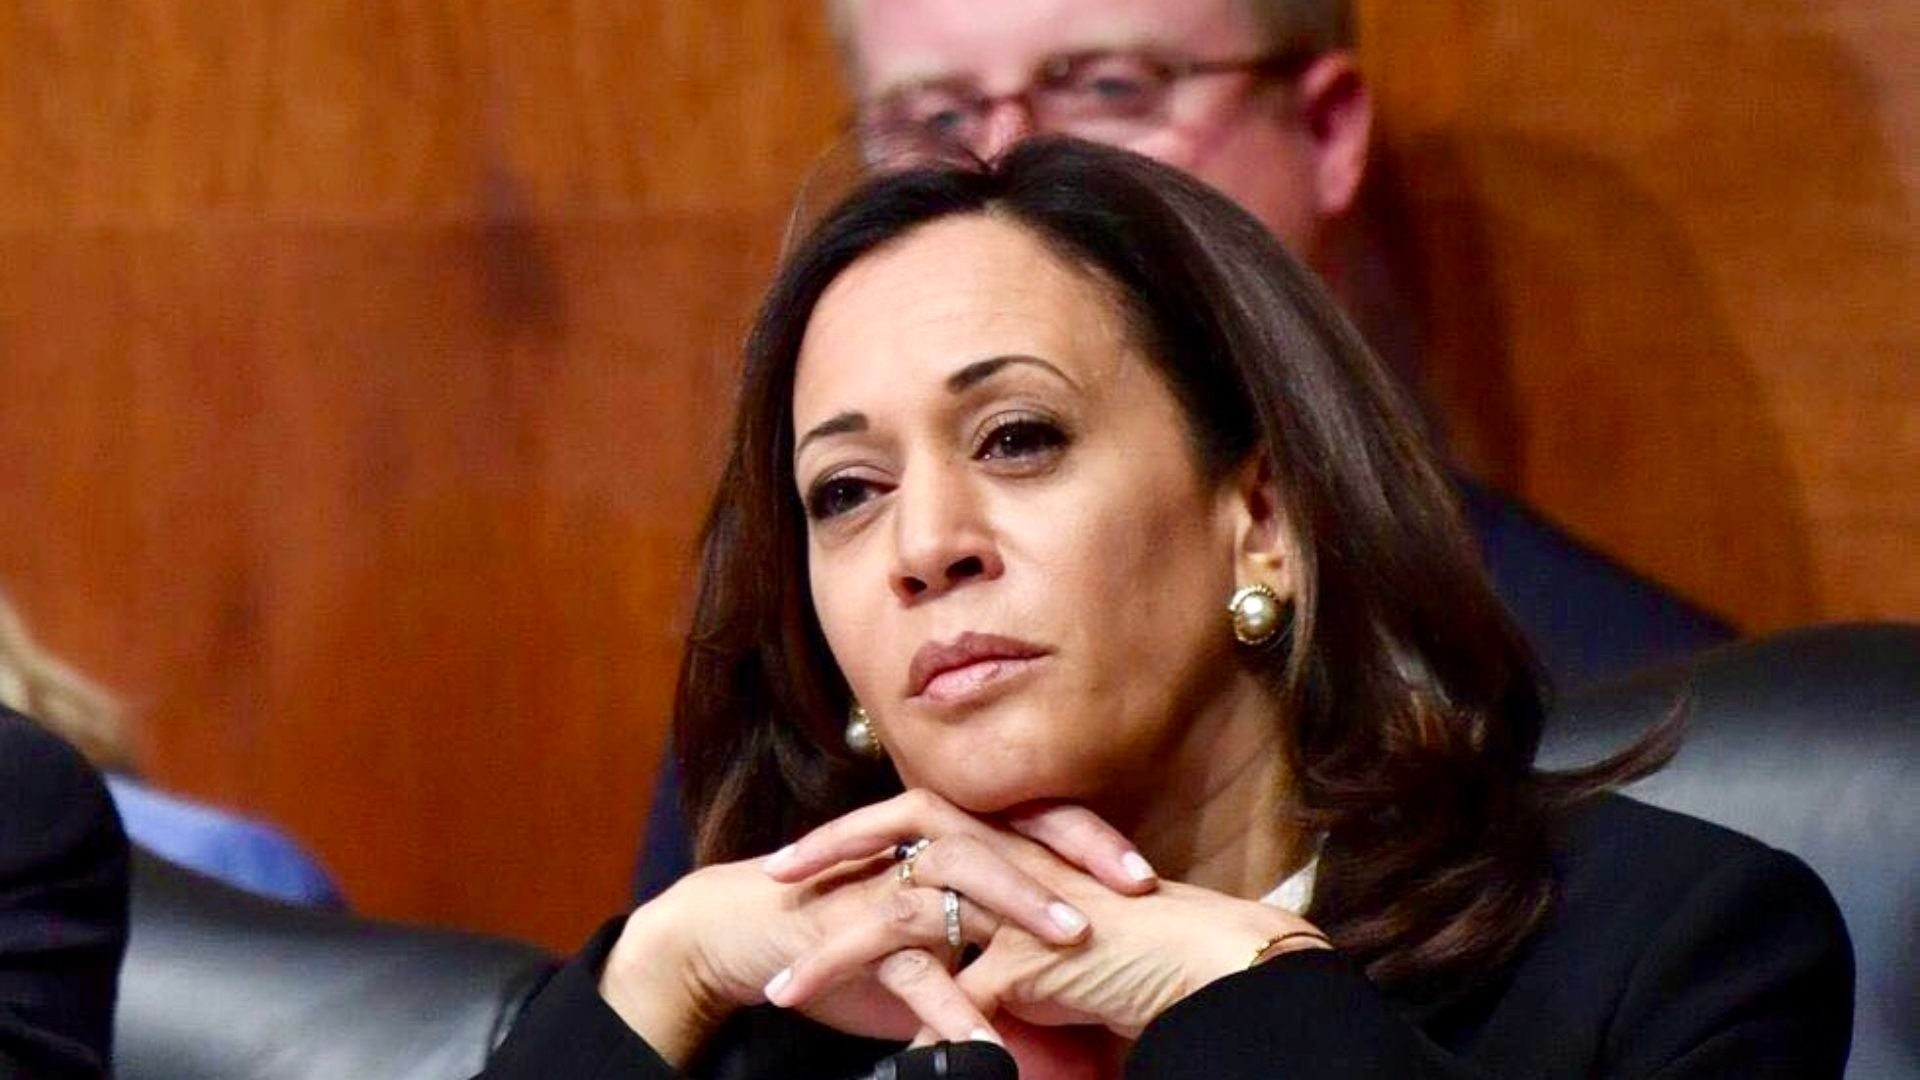 Sen. Kamala Harris Leaves U.S. A.G. Barr Flustered, Confused During Senate Judiciary Committee Hearing